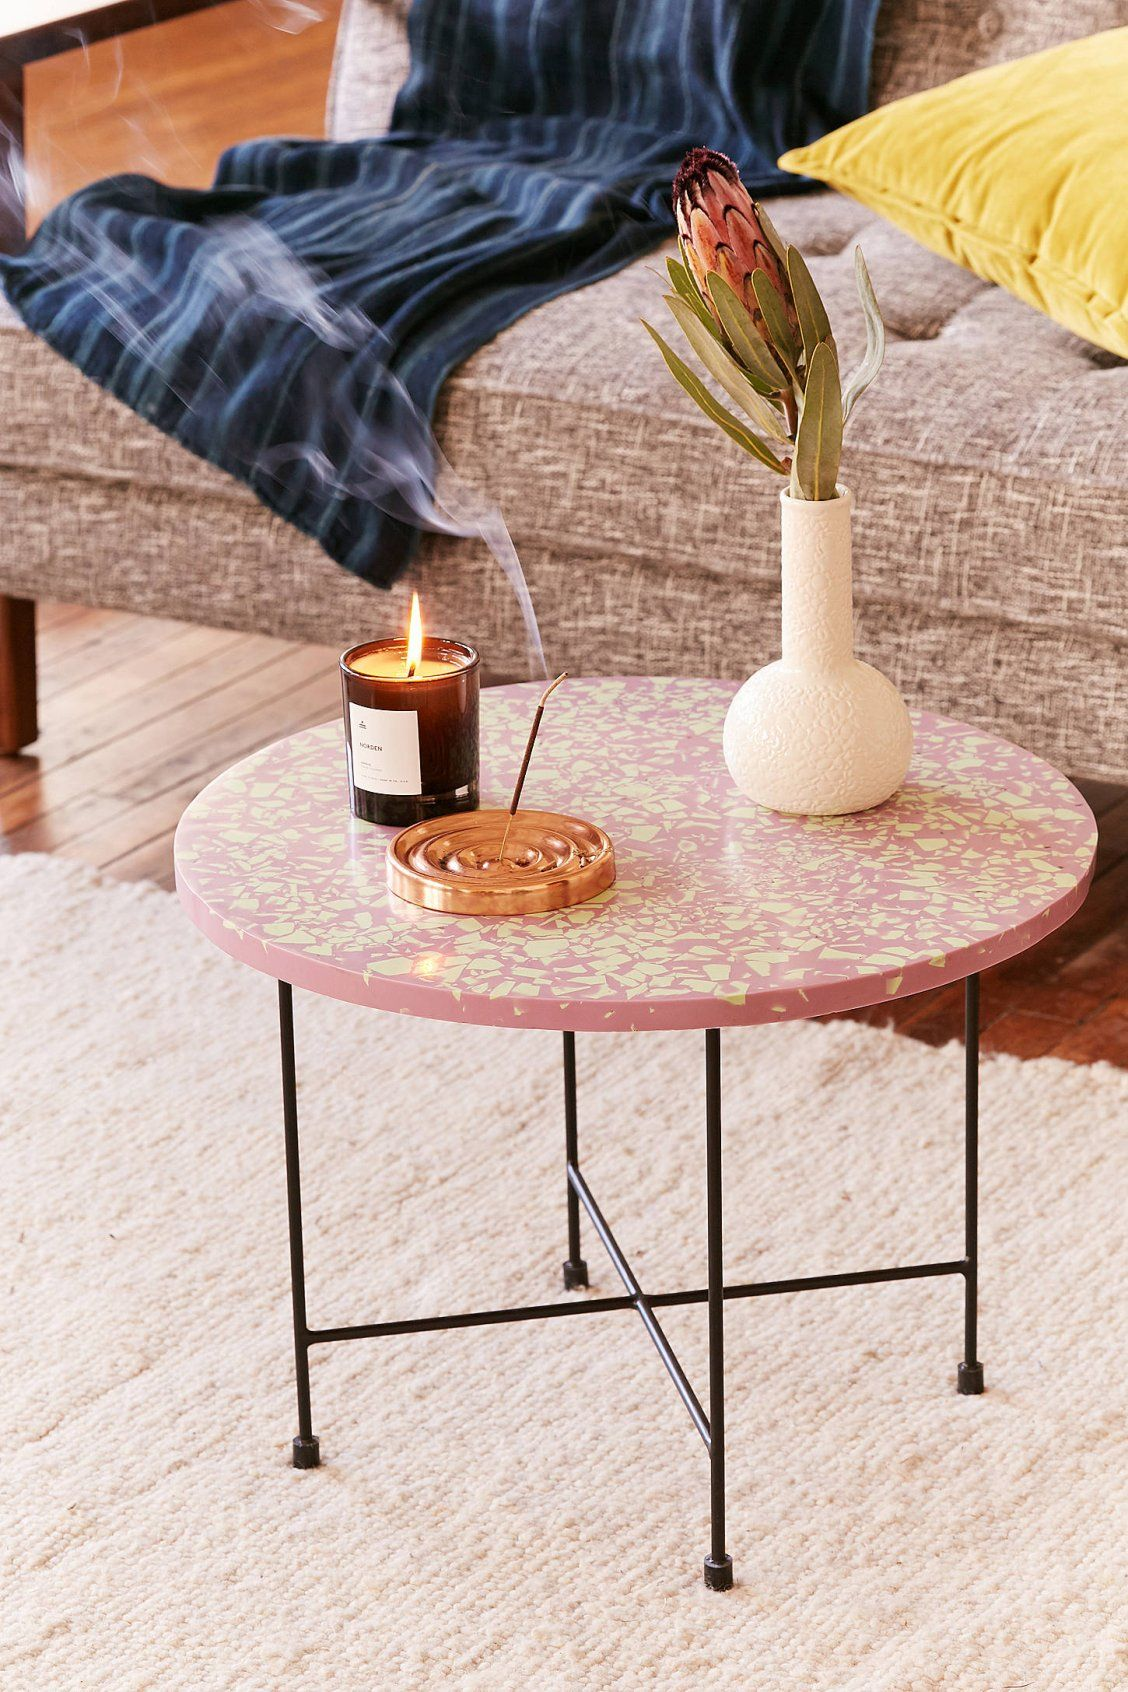 taryn terrazzo side table urban outfitters uohome room essentials stacking accent floor edging small folding patio globe lamp modern lamps best home decor ping websites round